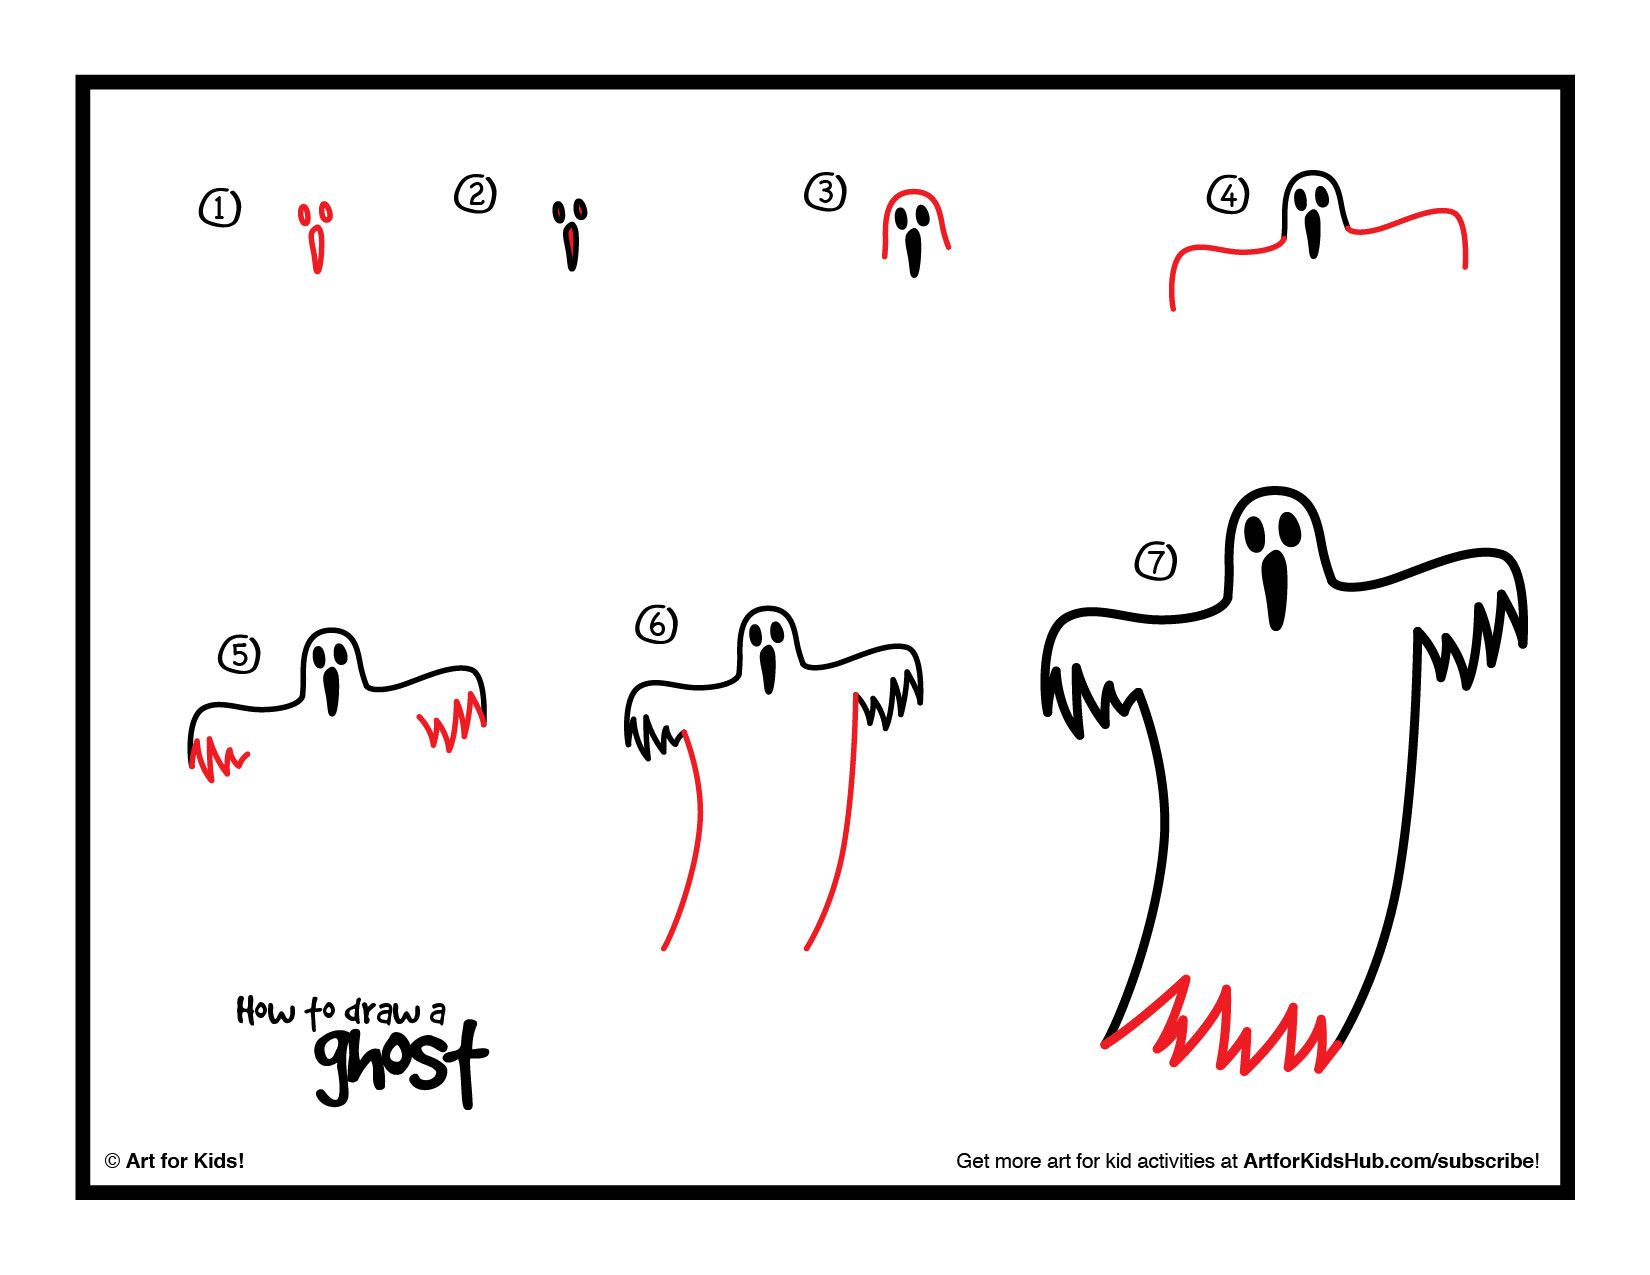 How To Draw A Ghost Art For Kids Hub Art For Kids Hub Easy Drawings Halloween Drawings